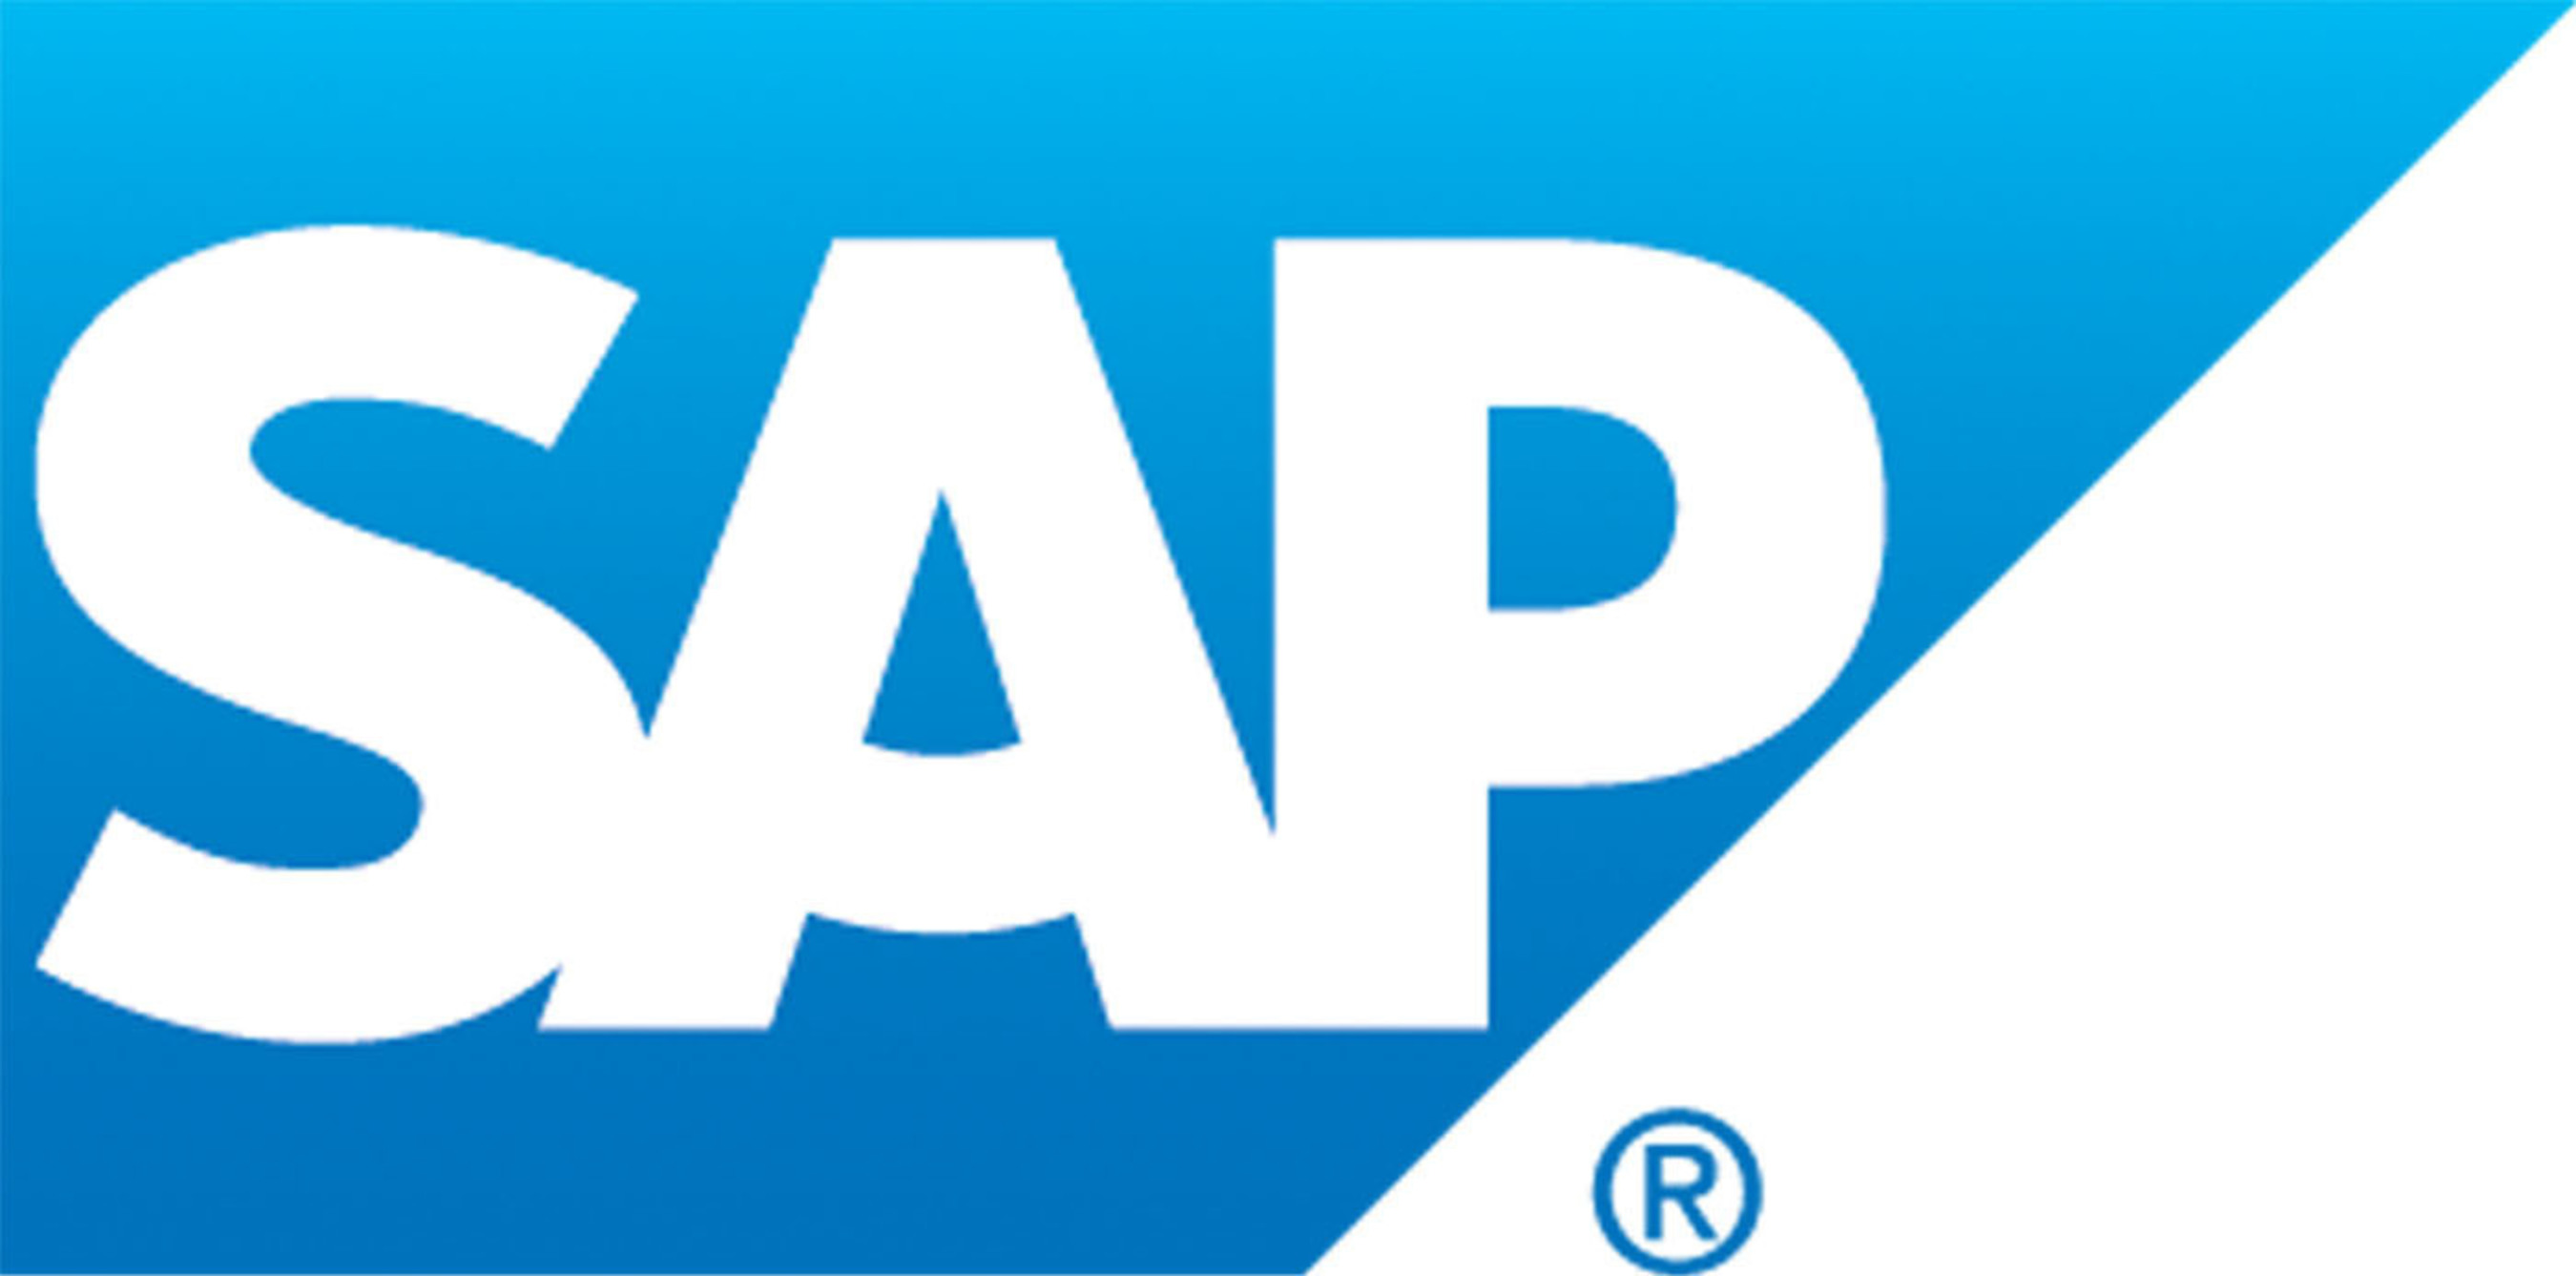 SAP' BusinessObjects Portfolio Delivers Modern Analytics for the Digital Enterprise